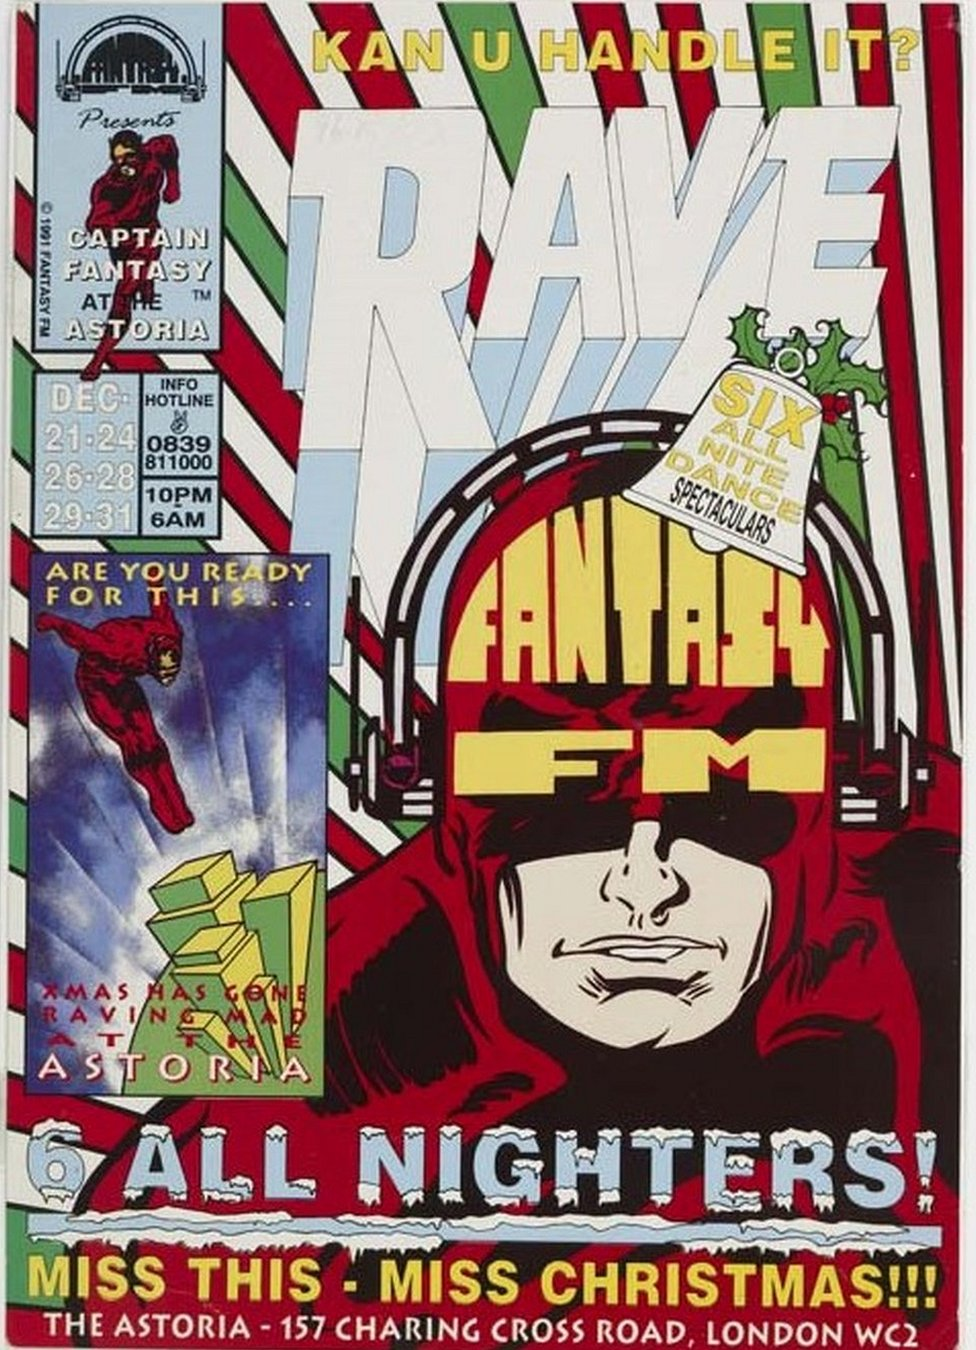 Poster for rave at the Astoria